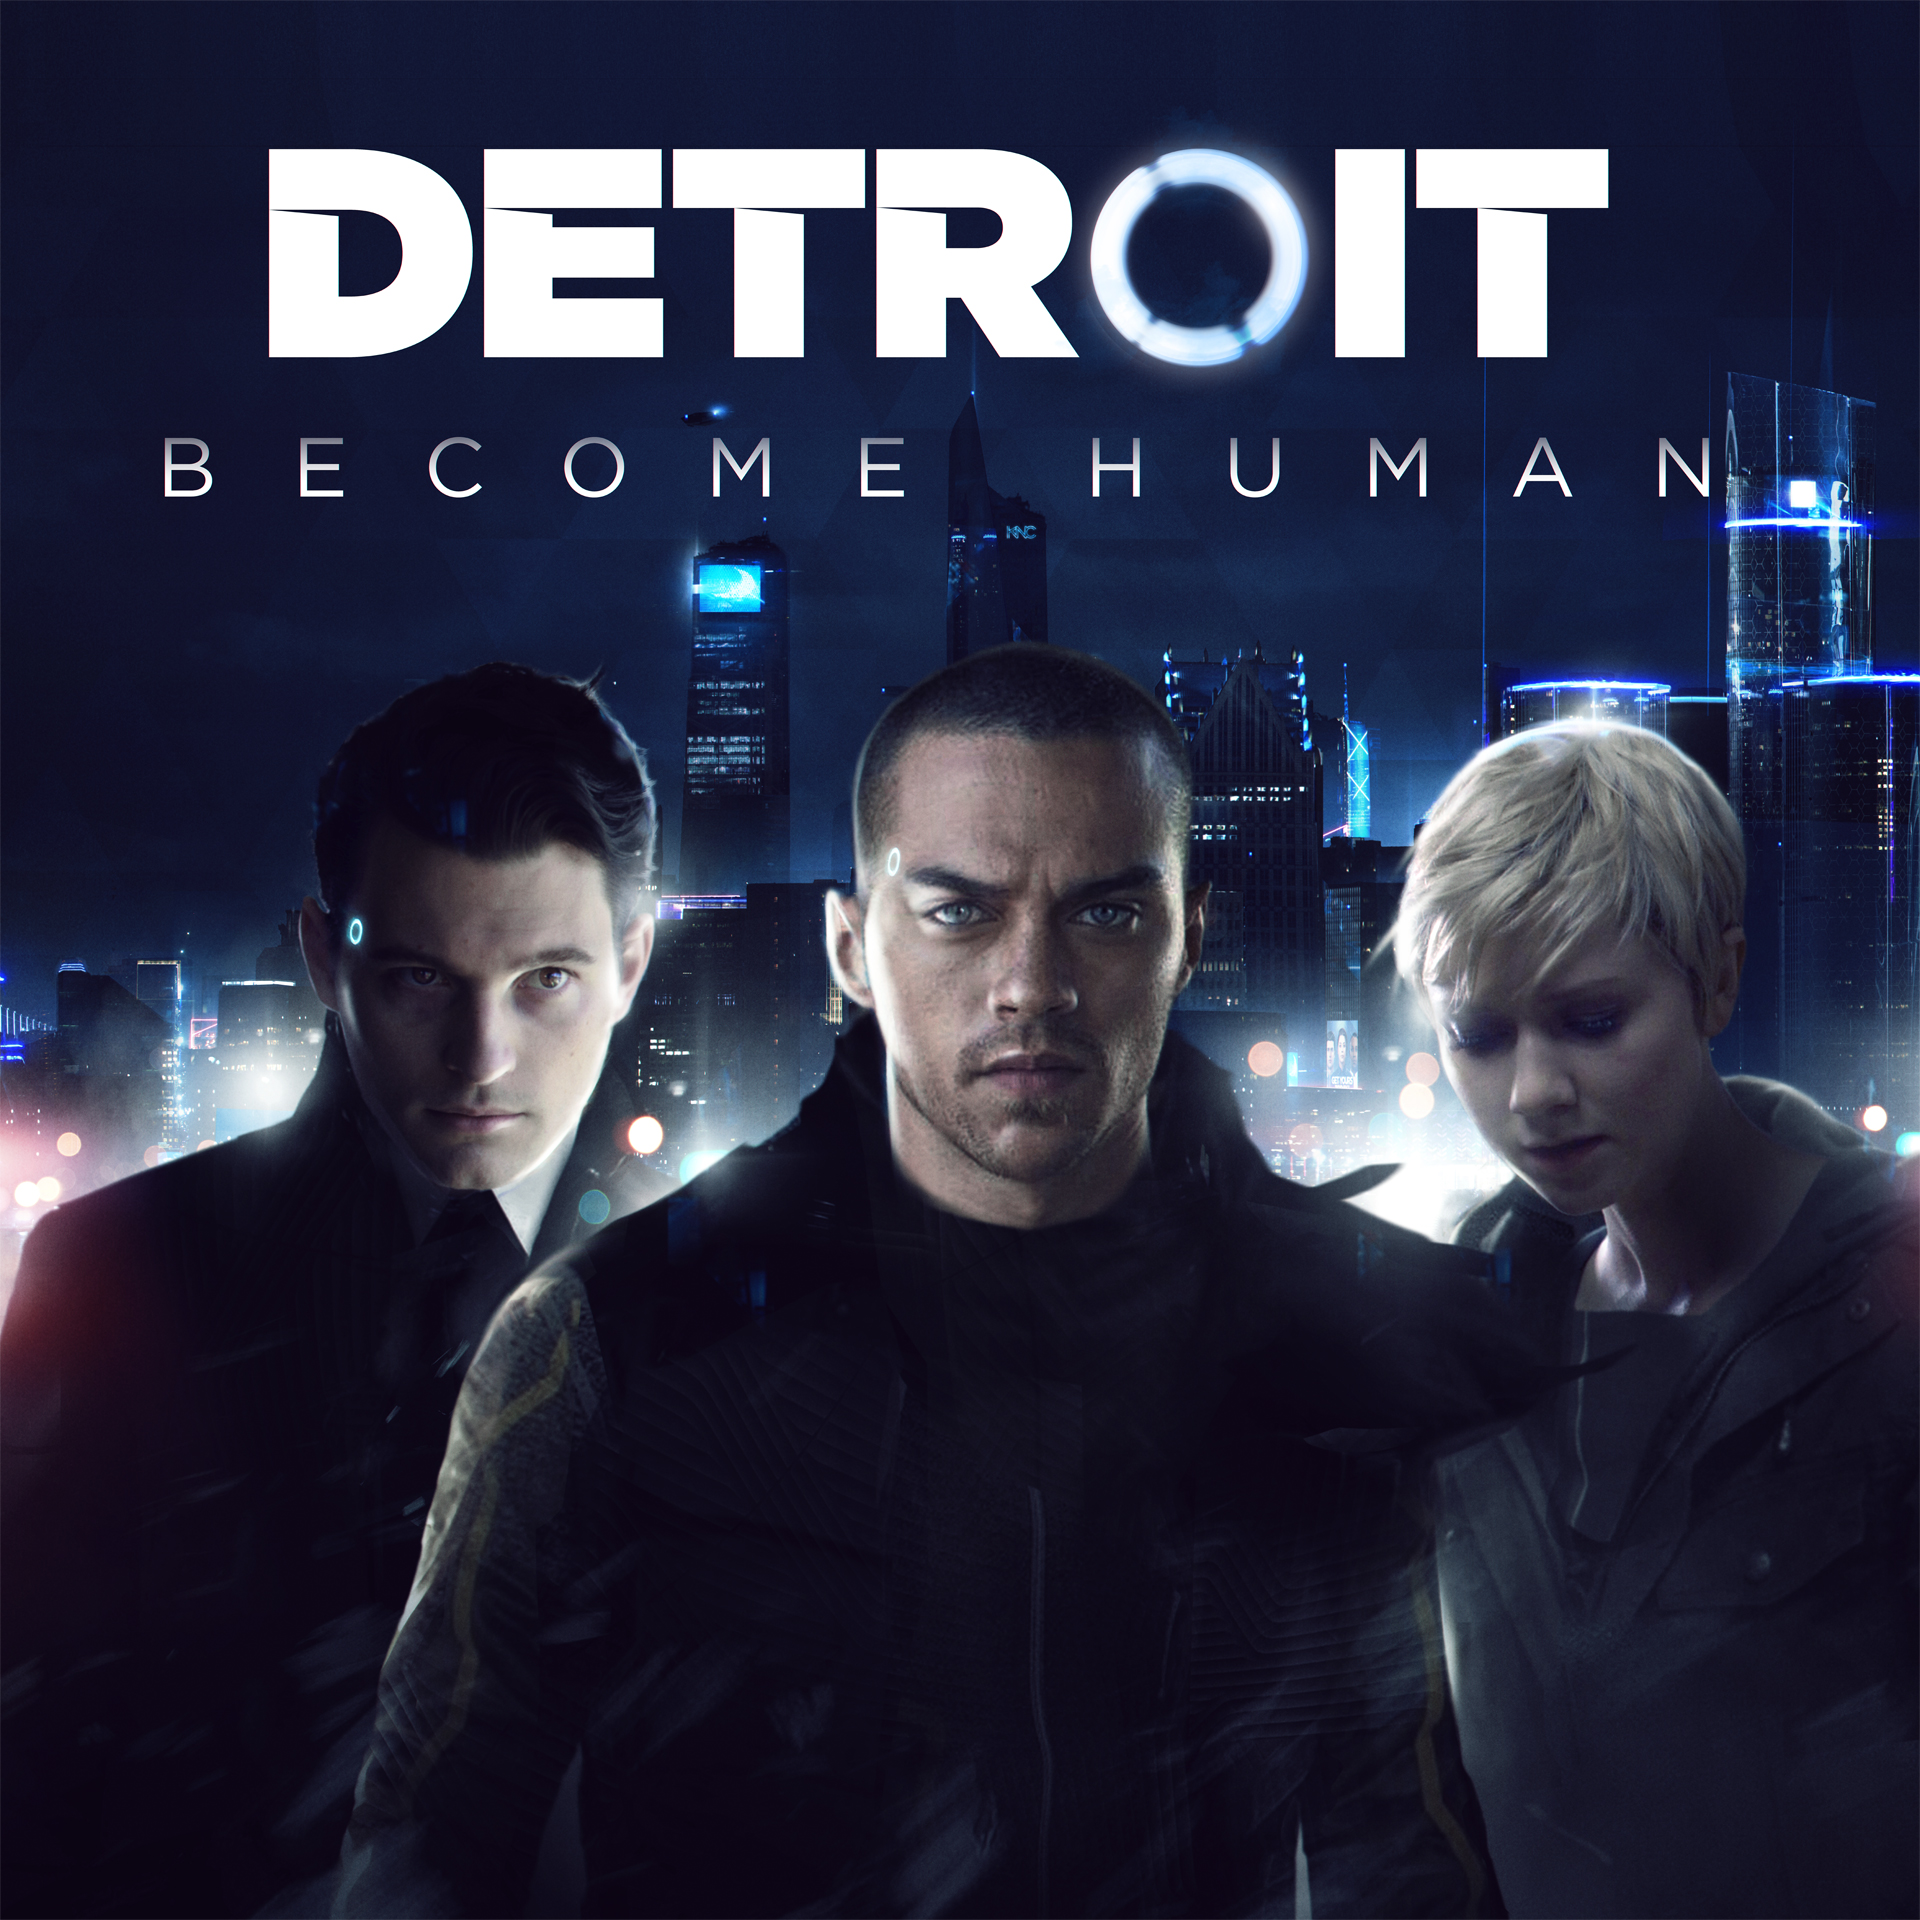 Detroit Become Human」、日本国内発売は2018年上期 - GAME Watch